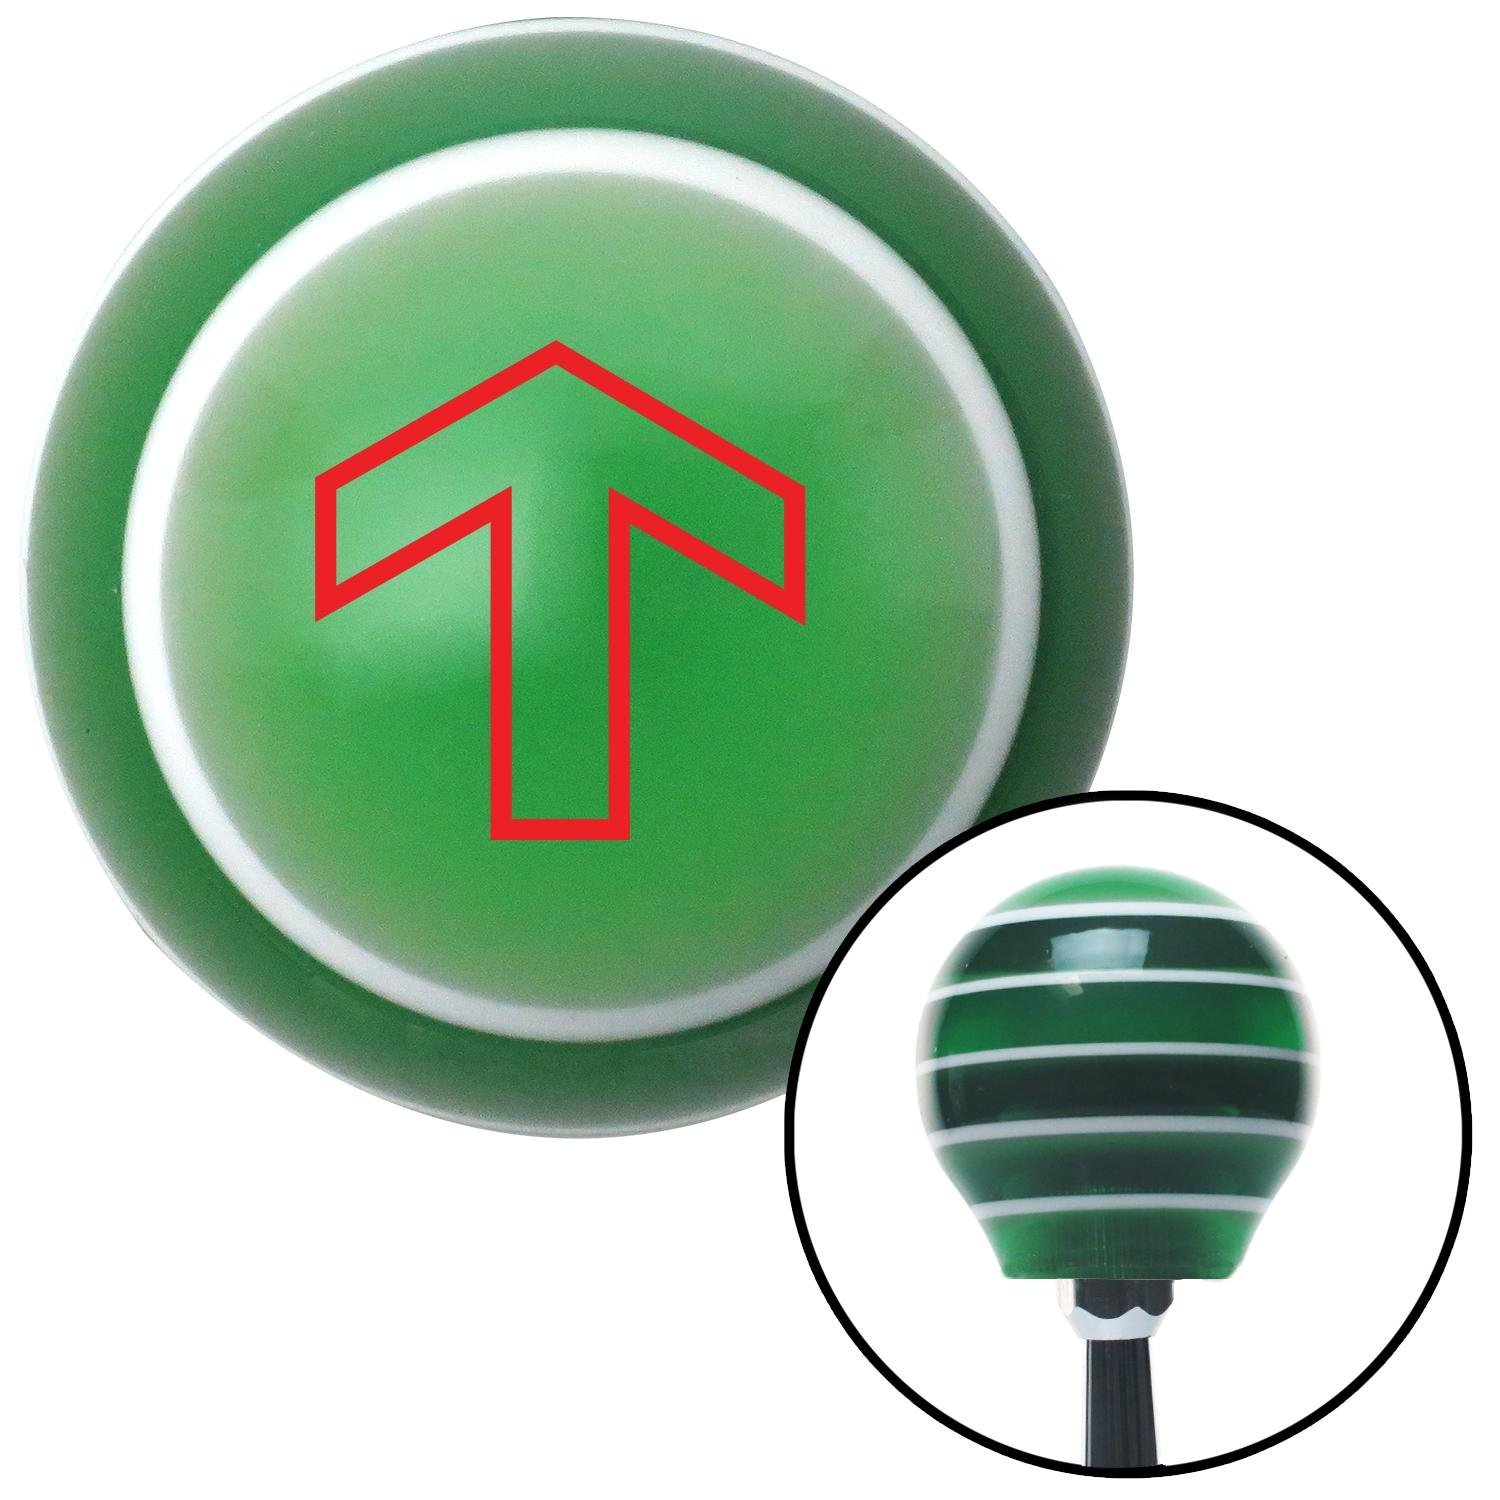 American Shifter 121230 Green Stripe Shift Knob with M16 x 1.5 Insert Red Broad Arrow Up